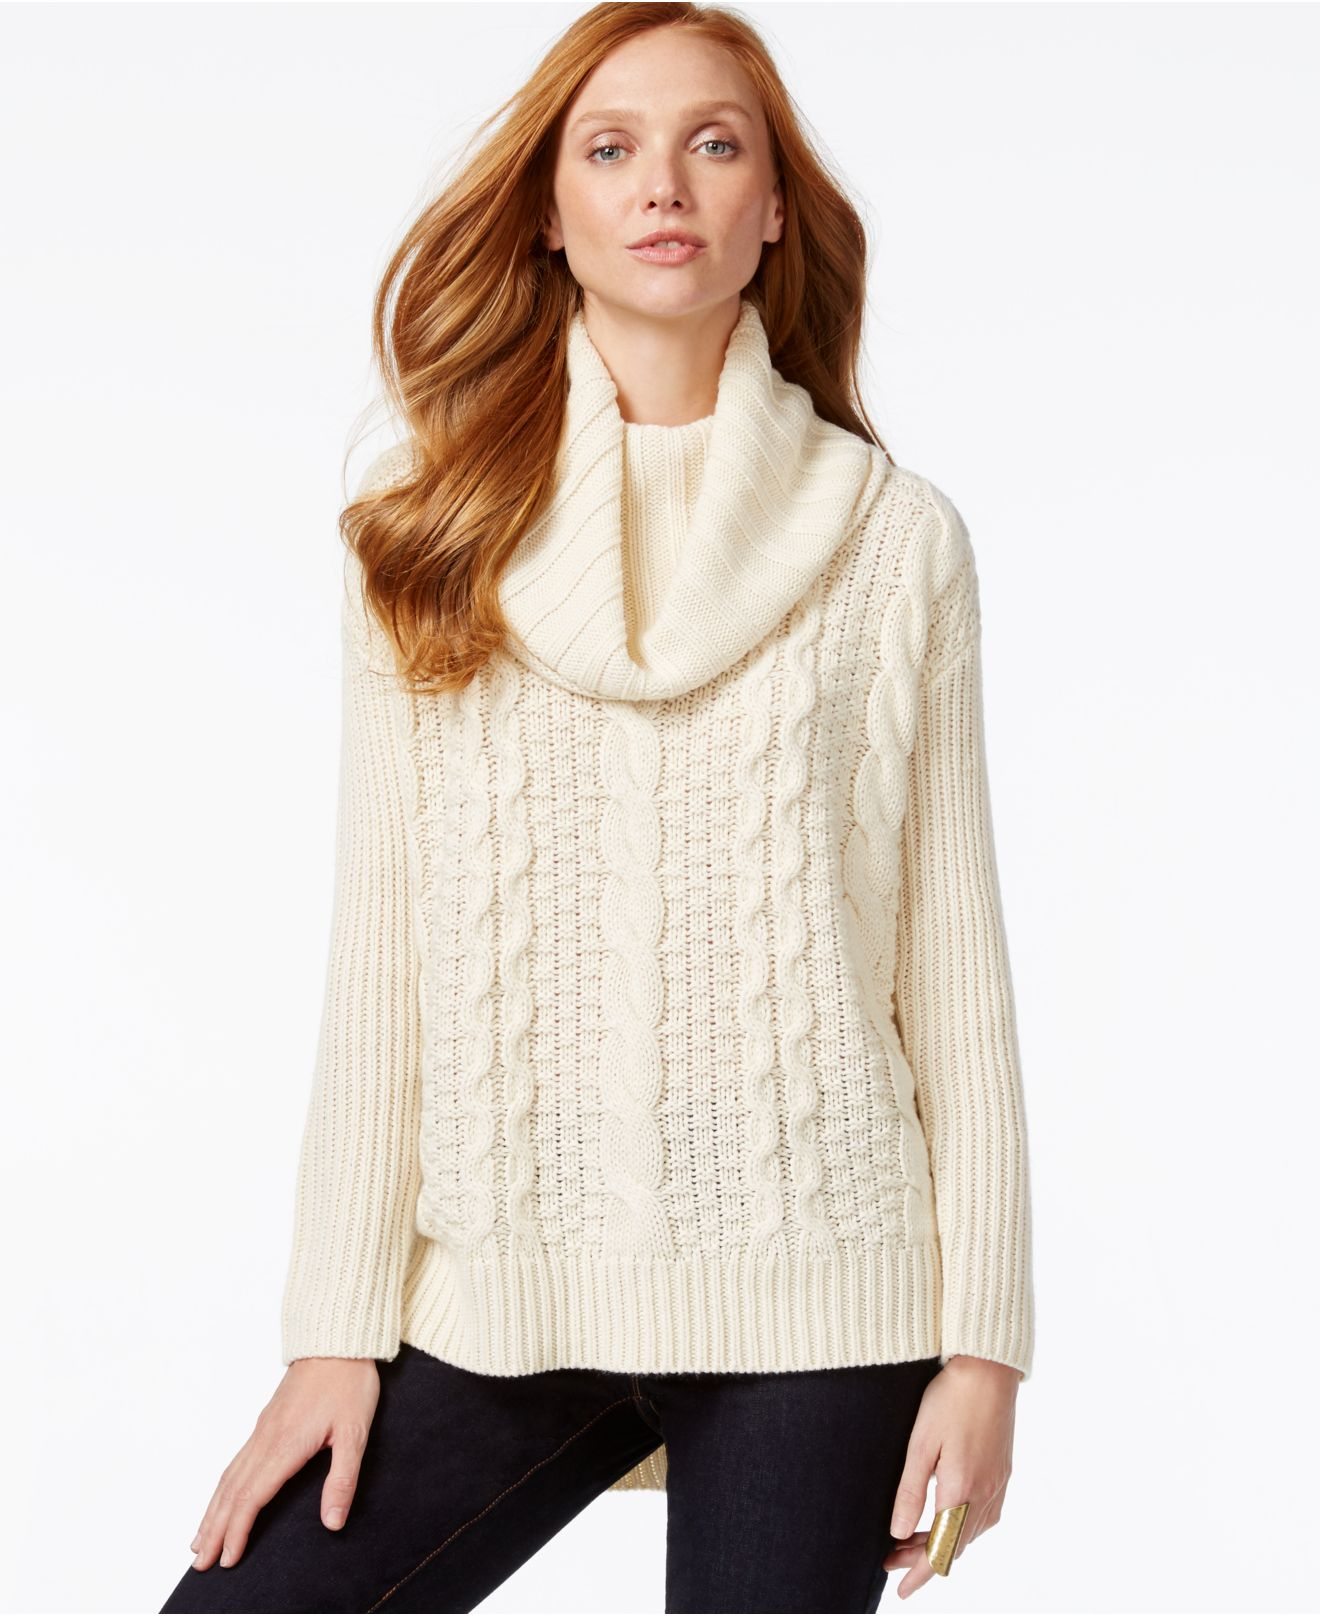 G.h. bass & co. Cowl-neck Cable-knit Sweater in White | Lyst